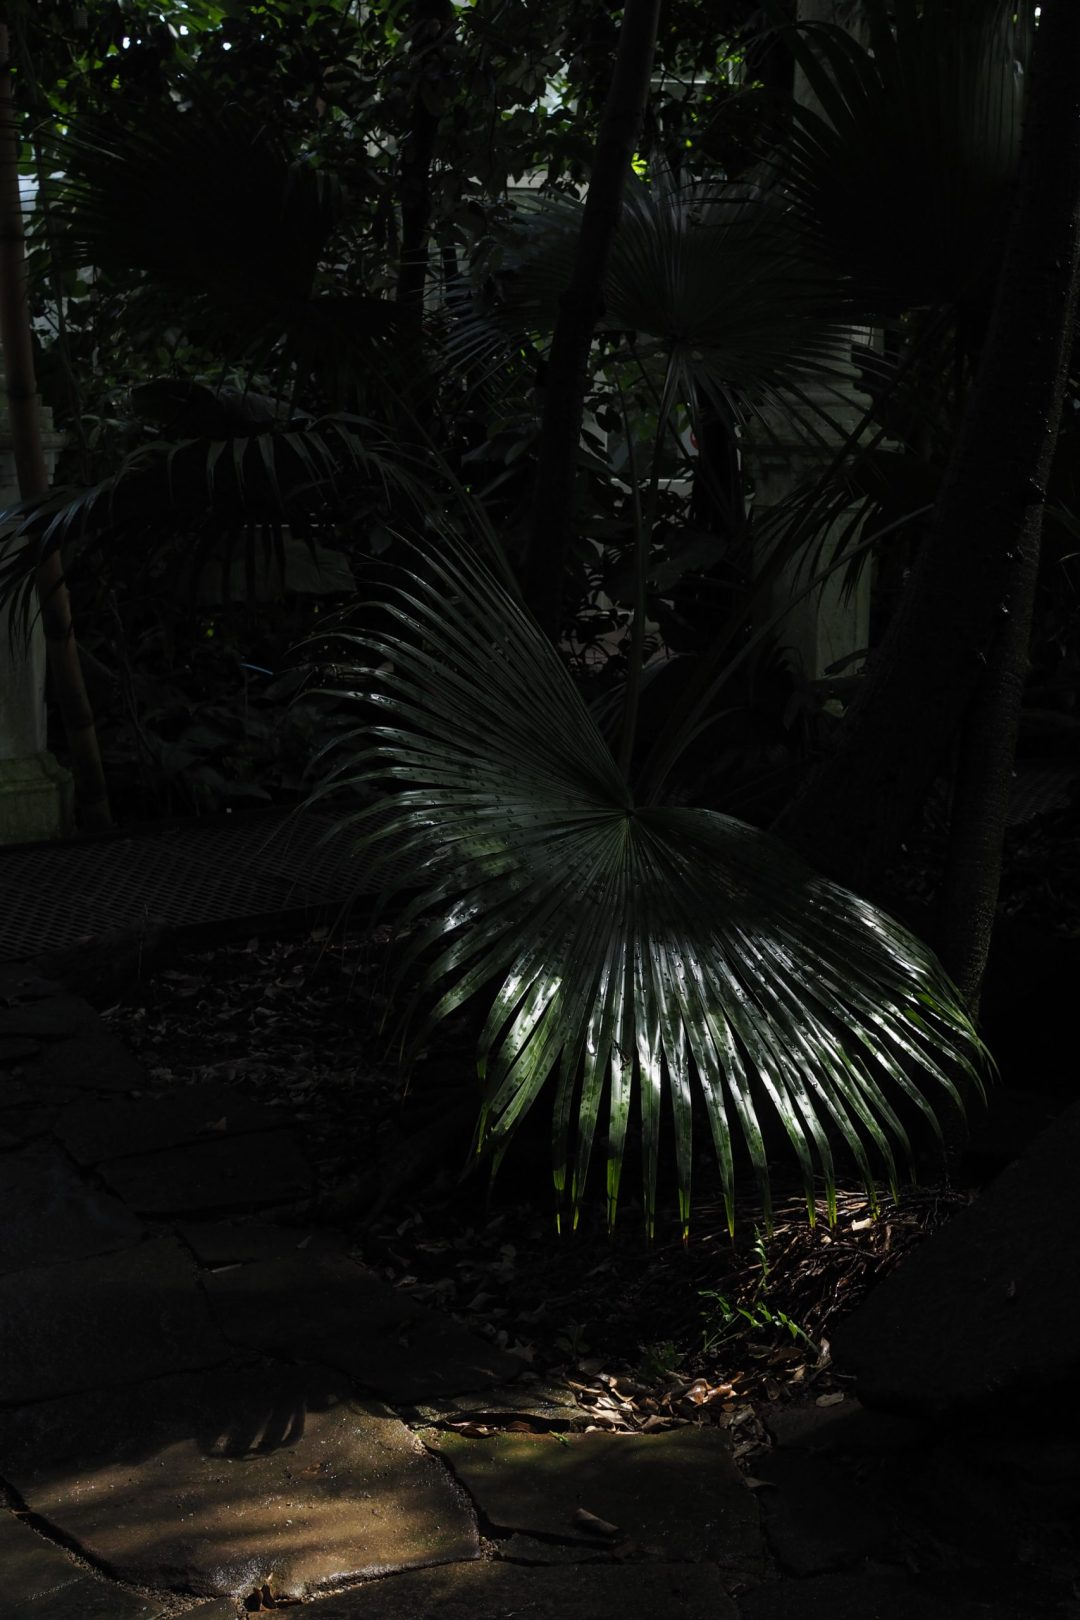 Large palm inside he palm house, Copenhagen